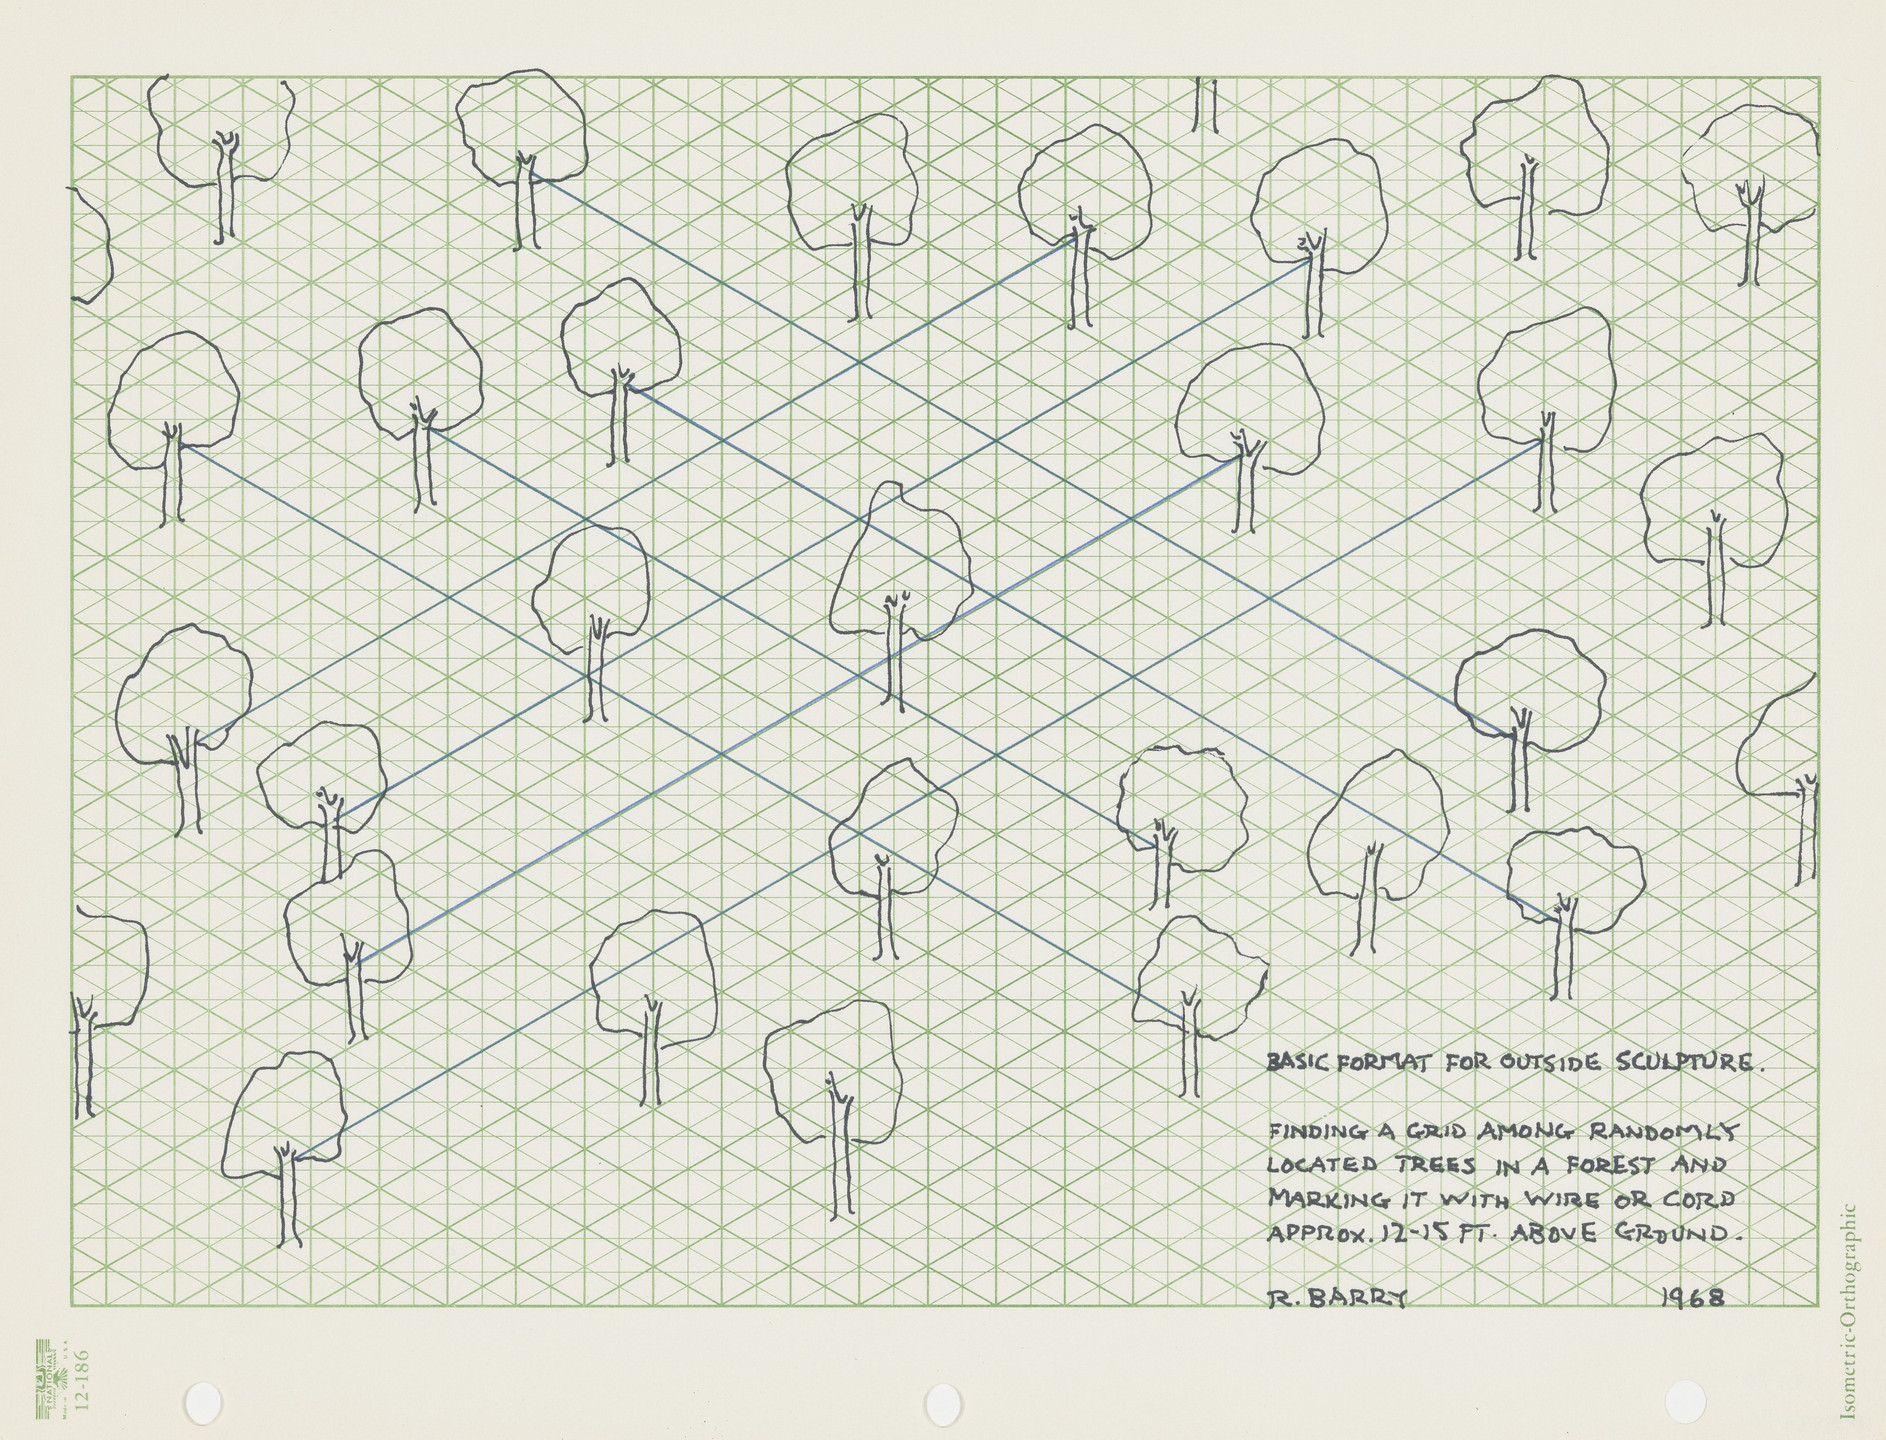 Robert Barry. Basic Format for Outside Sculpture (Finding a Grid among Randomly Located Trees...). 1968